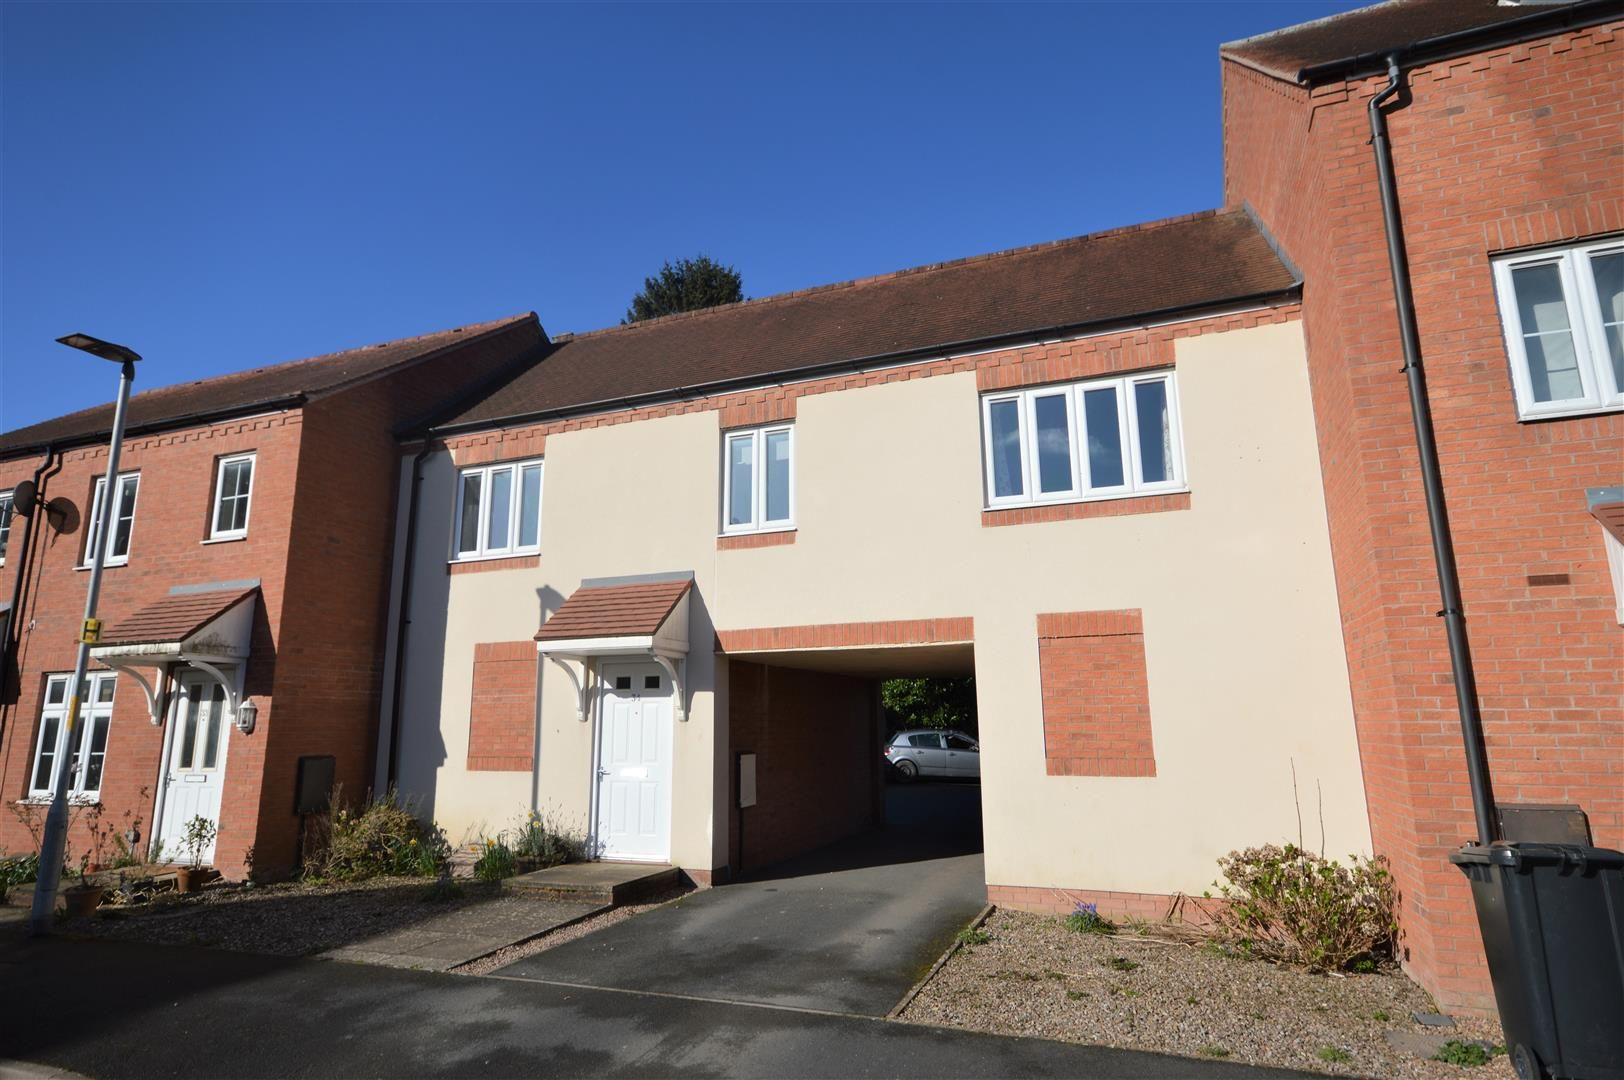 2 bed terraced for sale in Kington, HR5